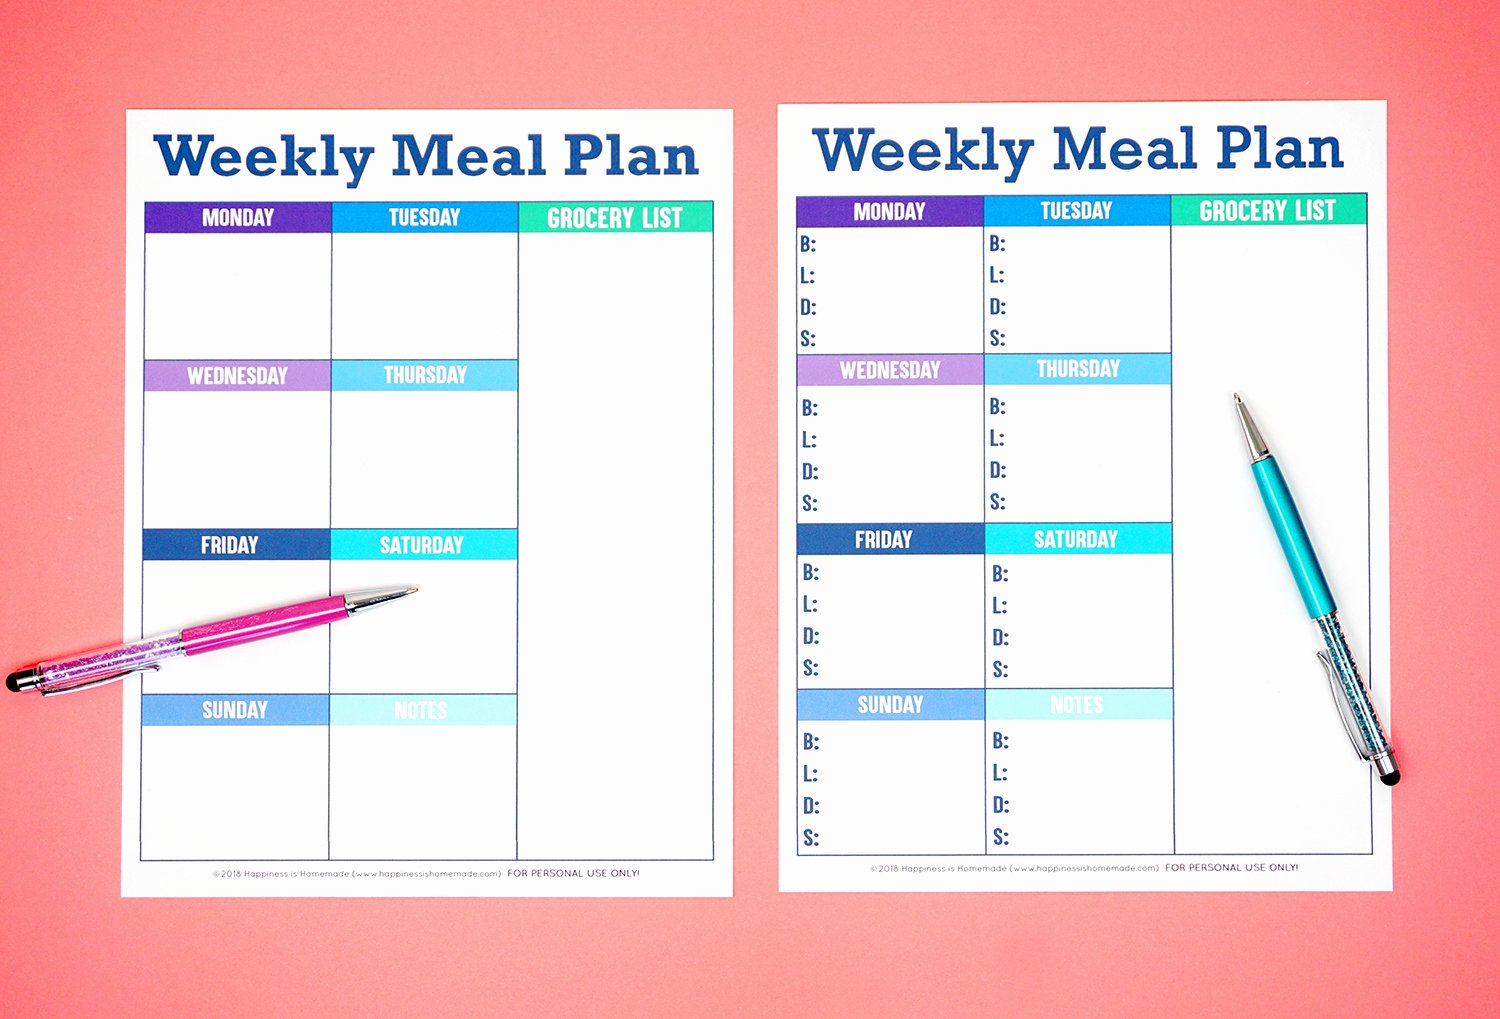 Menu Planner Template Excel Awesome Printable Weekly Meal Planner Template Happiness is Homemade